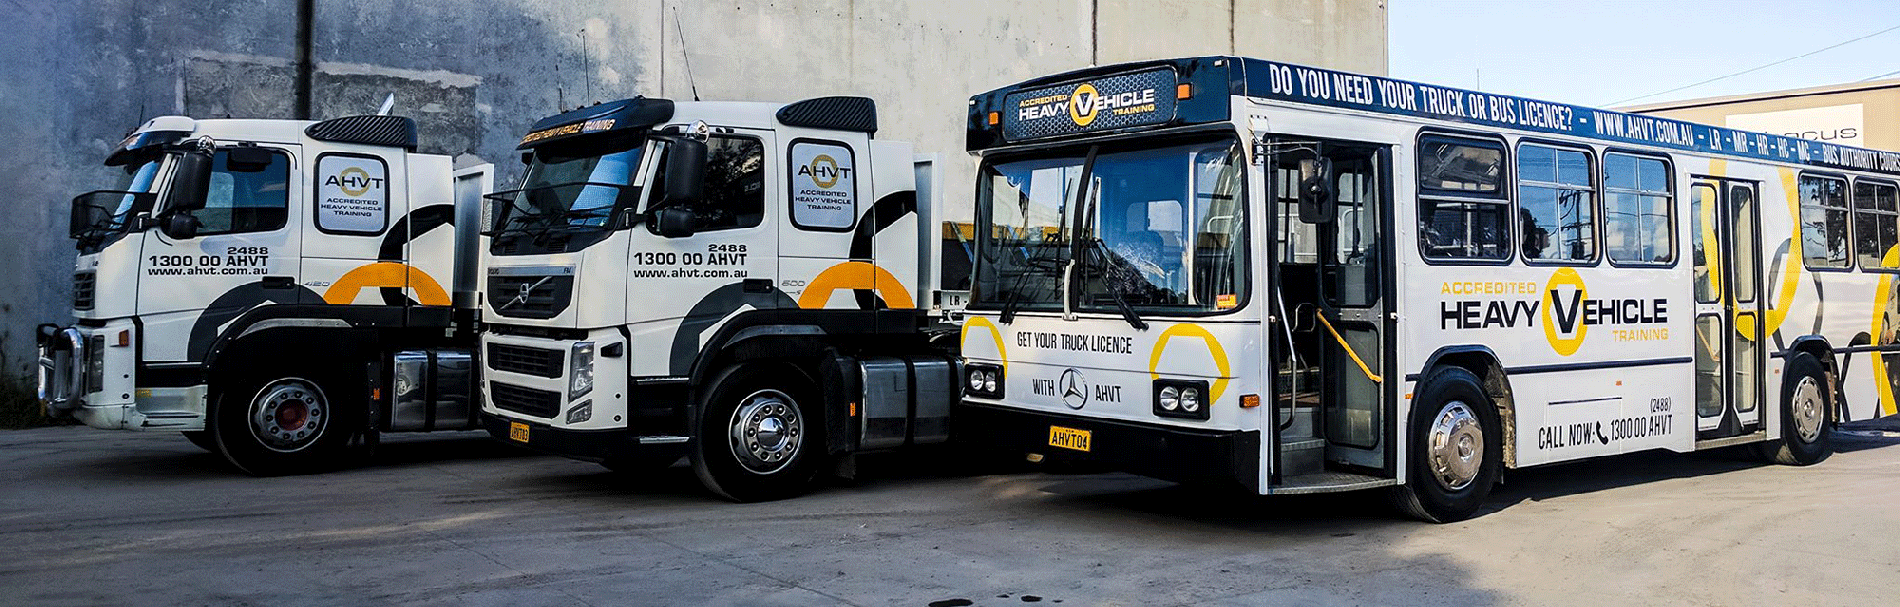 AHVT Truck Licence gallery